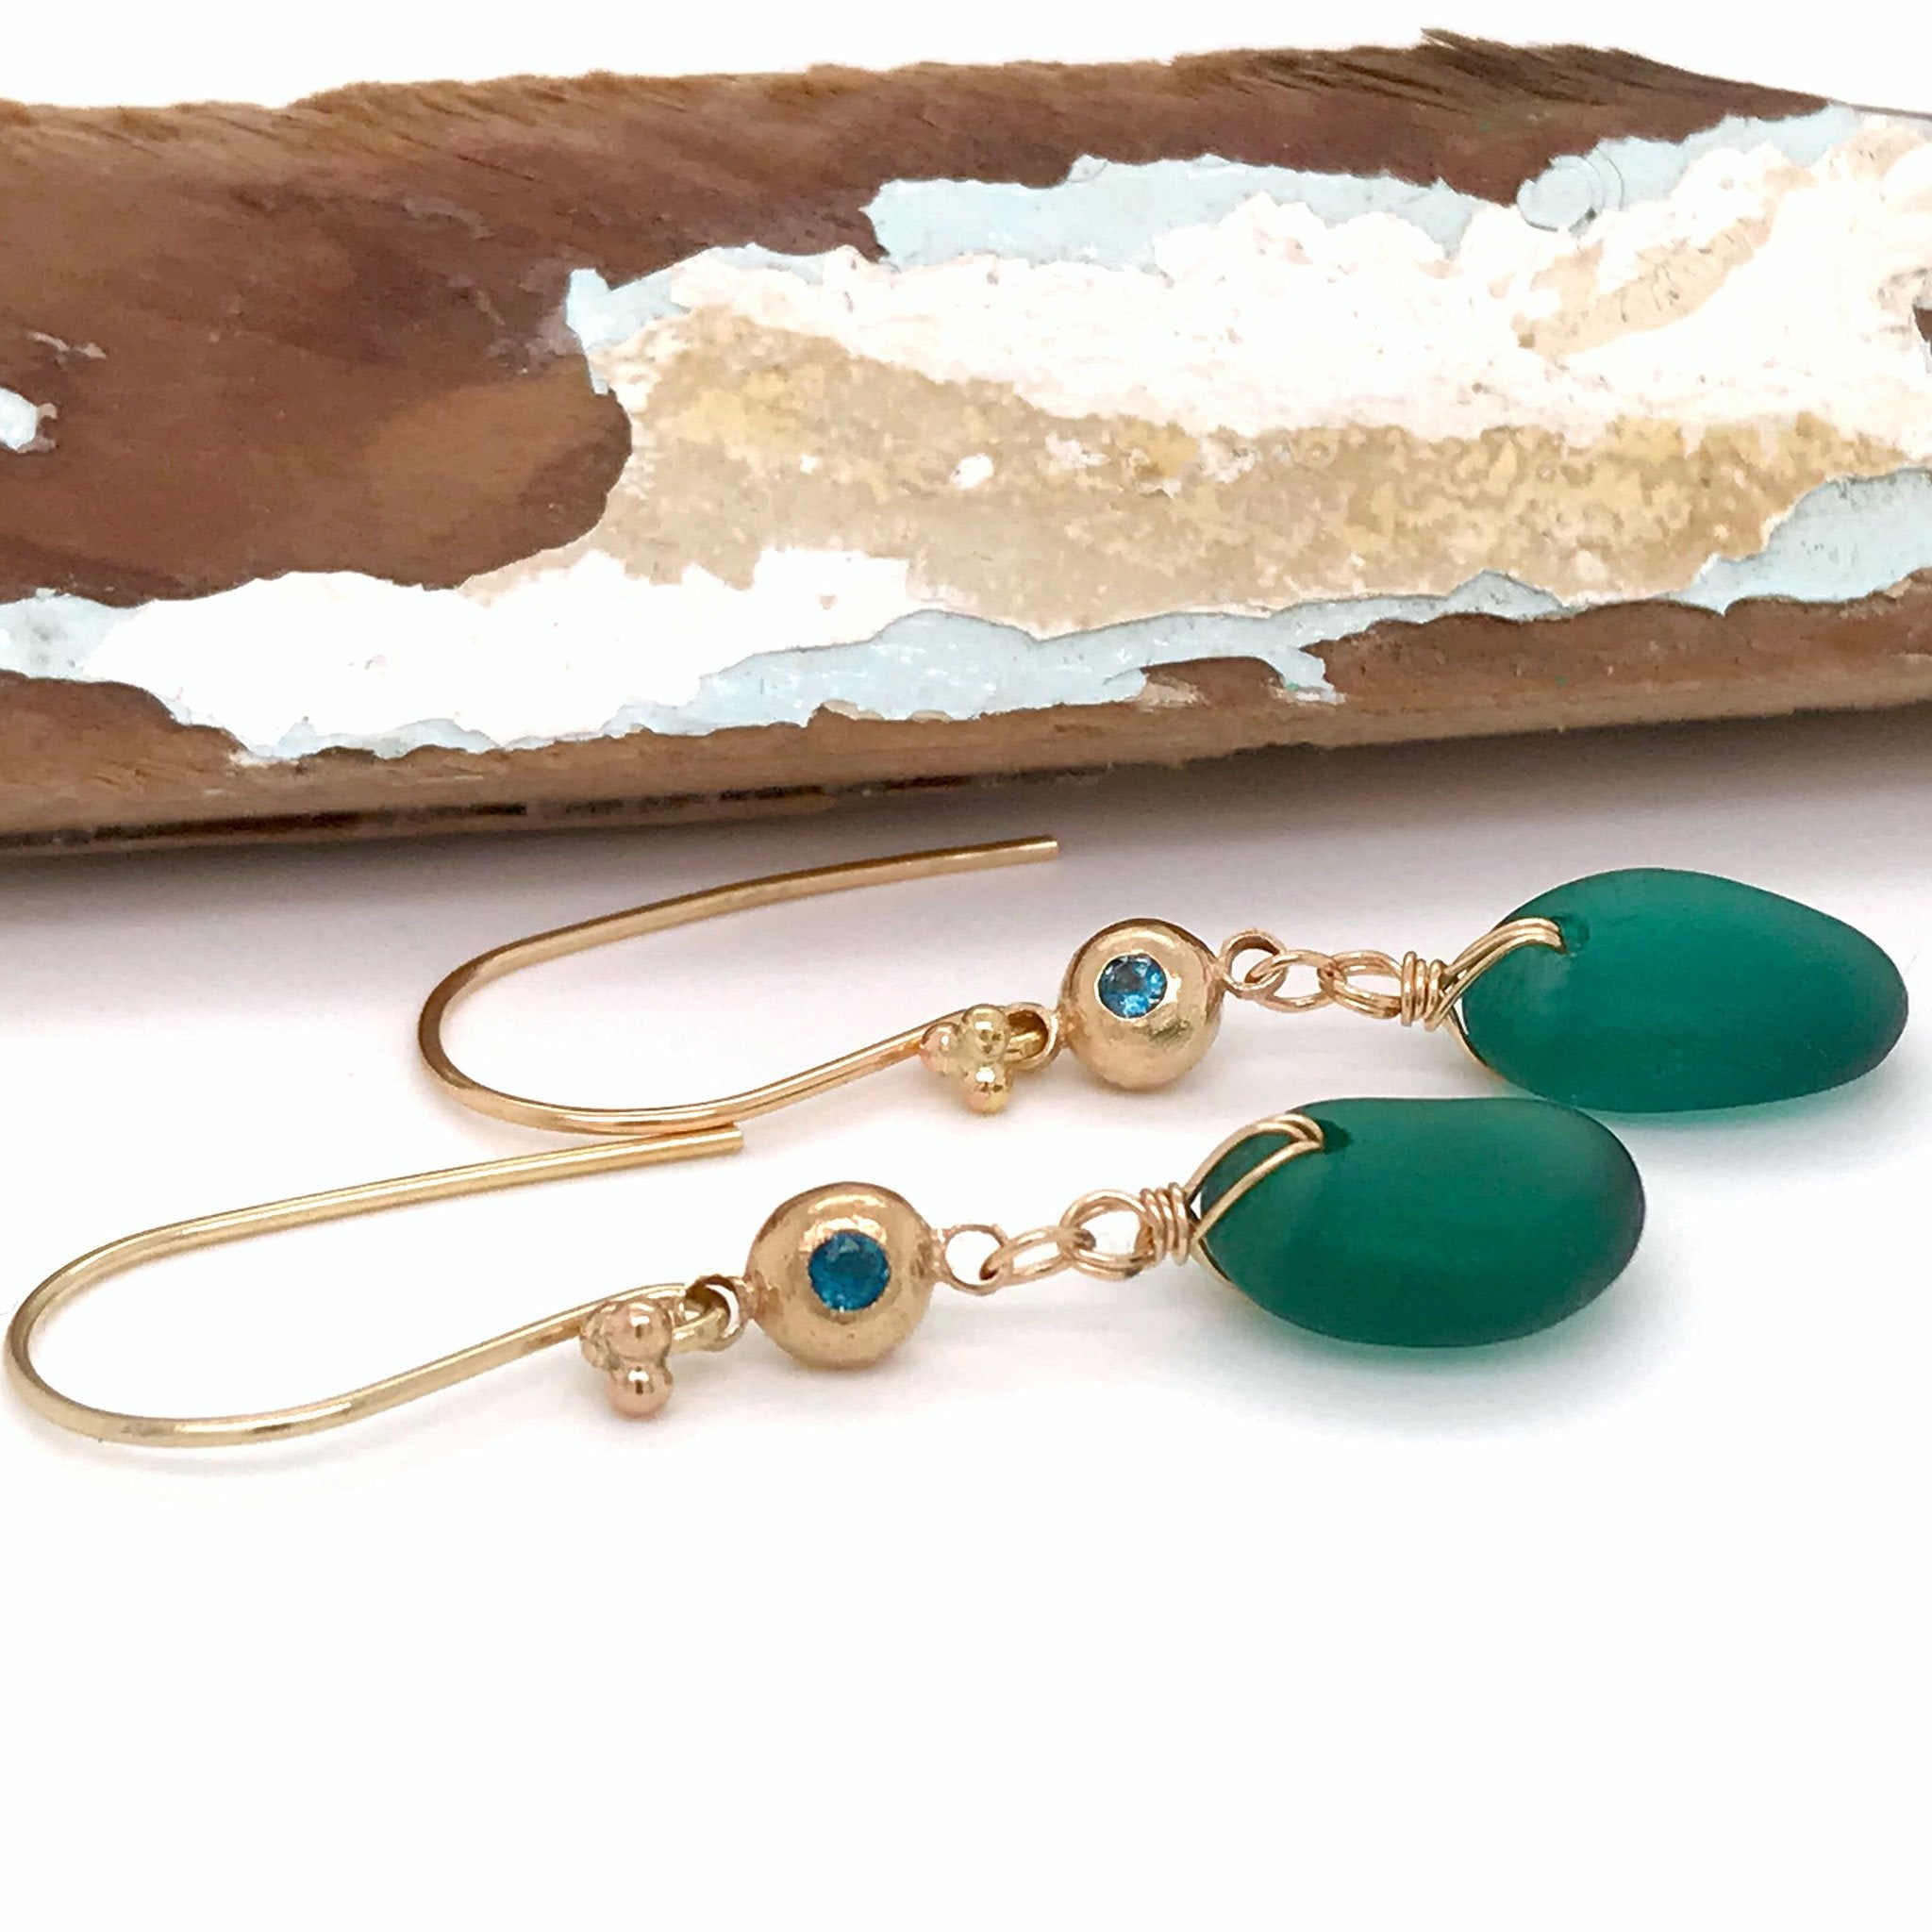 rare teal seaglass on gold earrings with blue green tourmaline Kriket Broadhurst jewellery